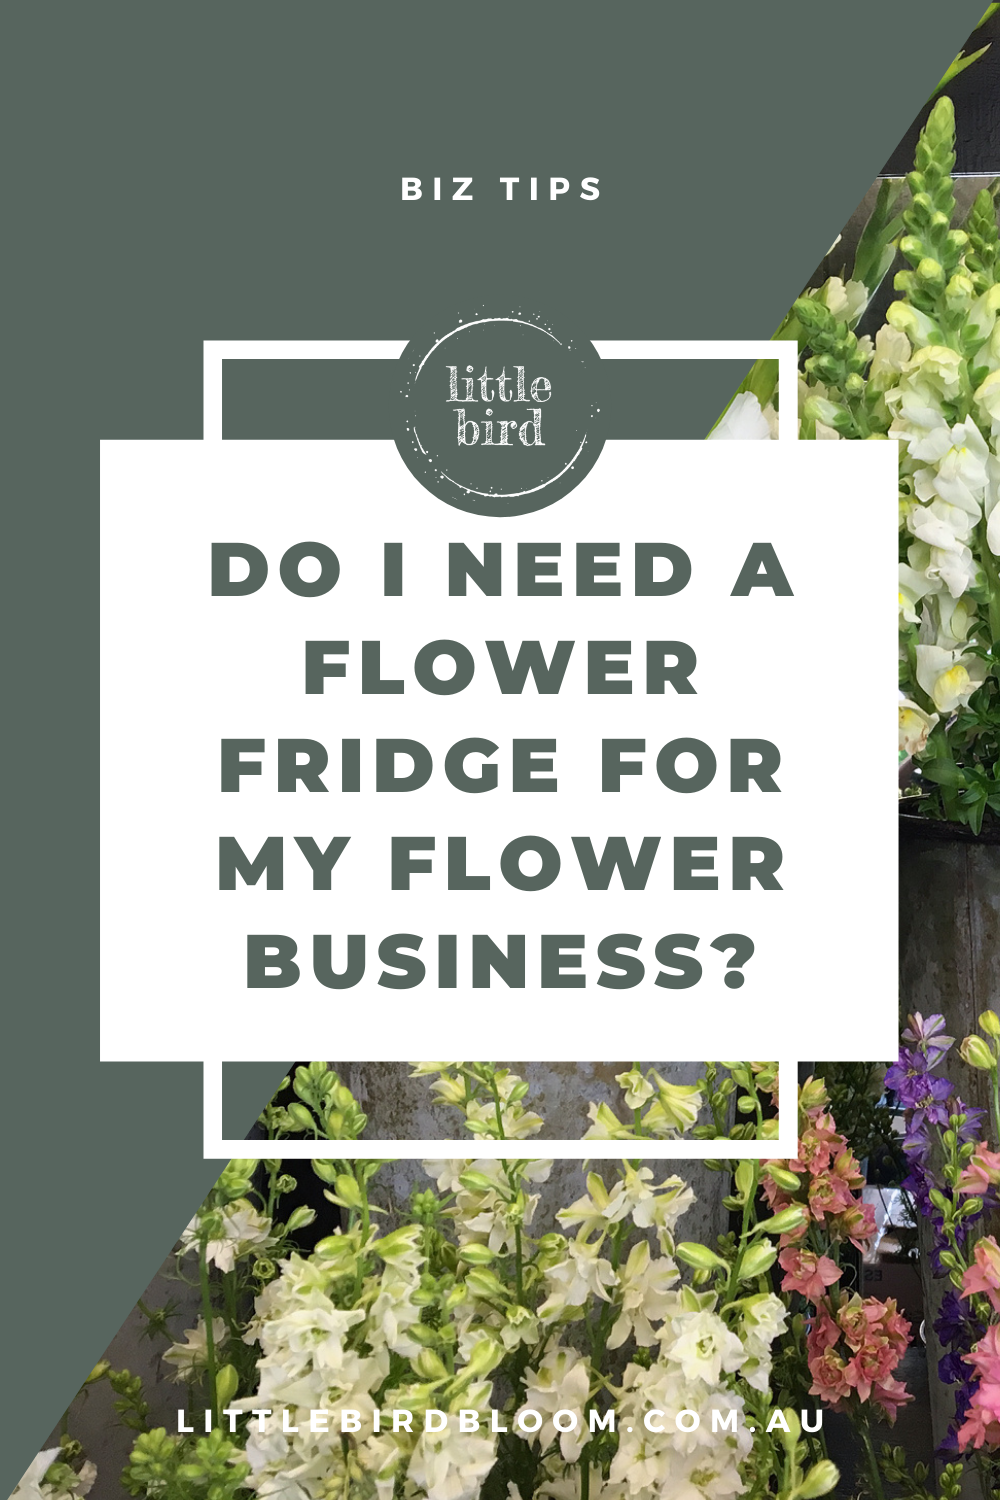 Do I need a flower cooler for my flower business?